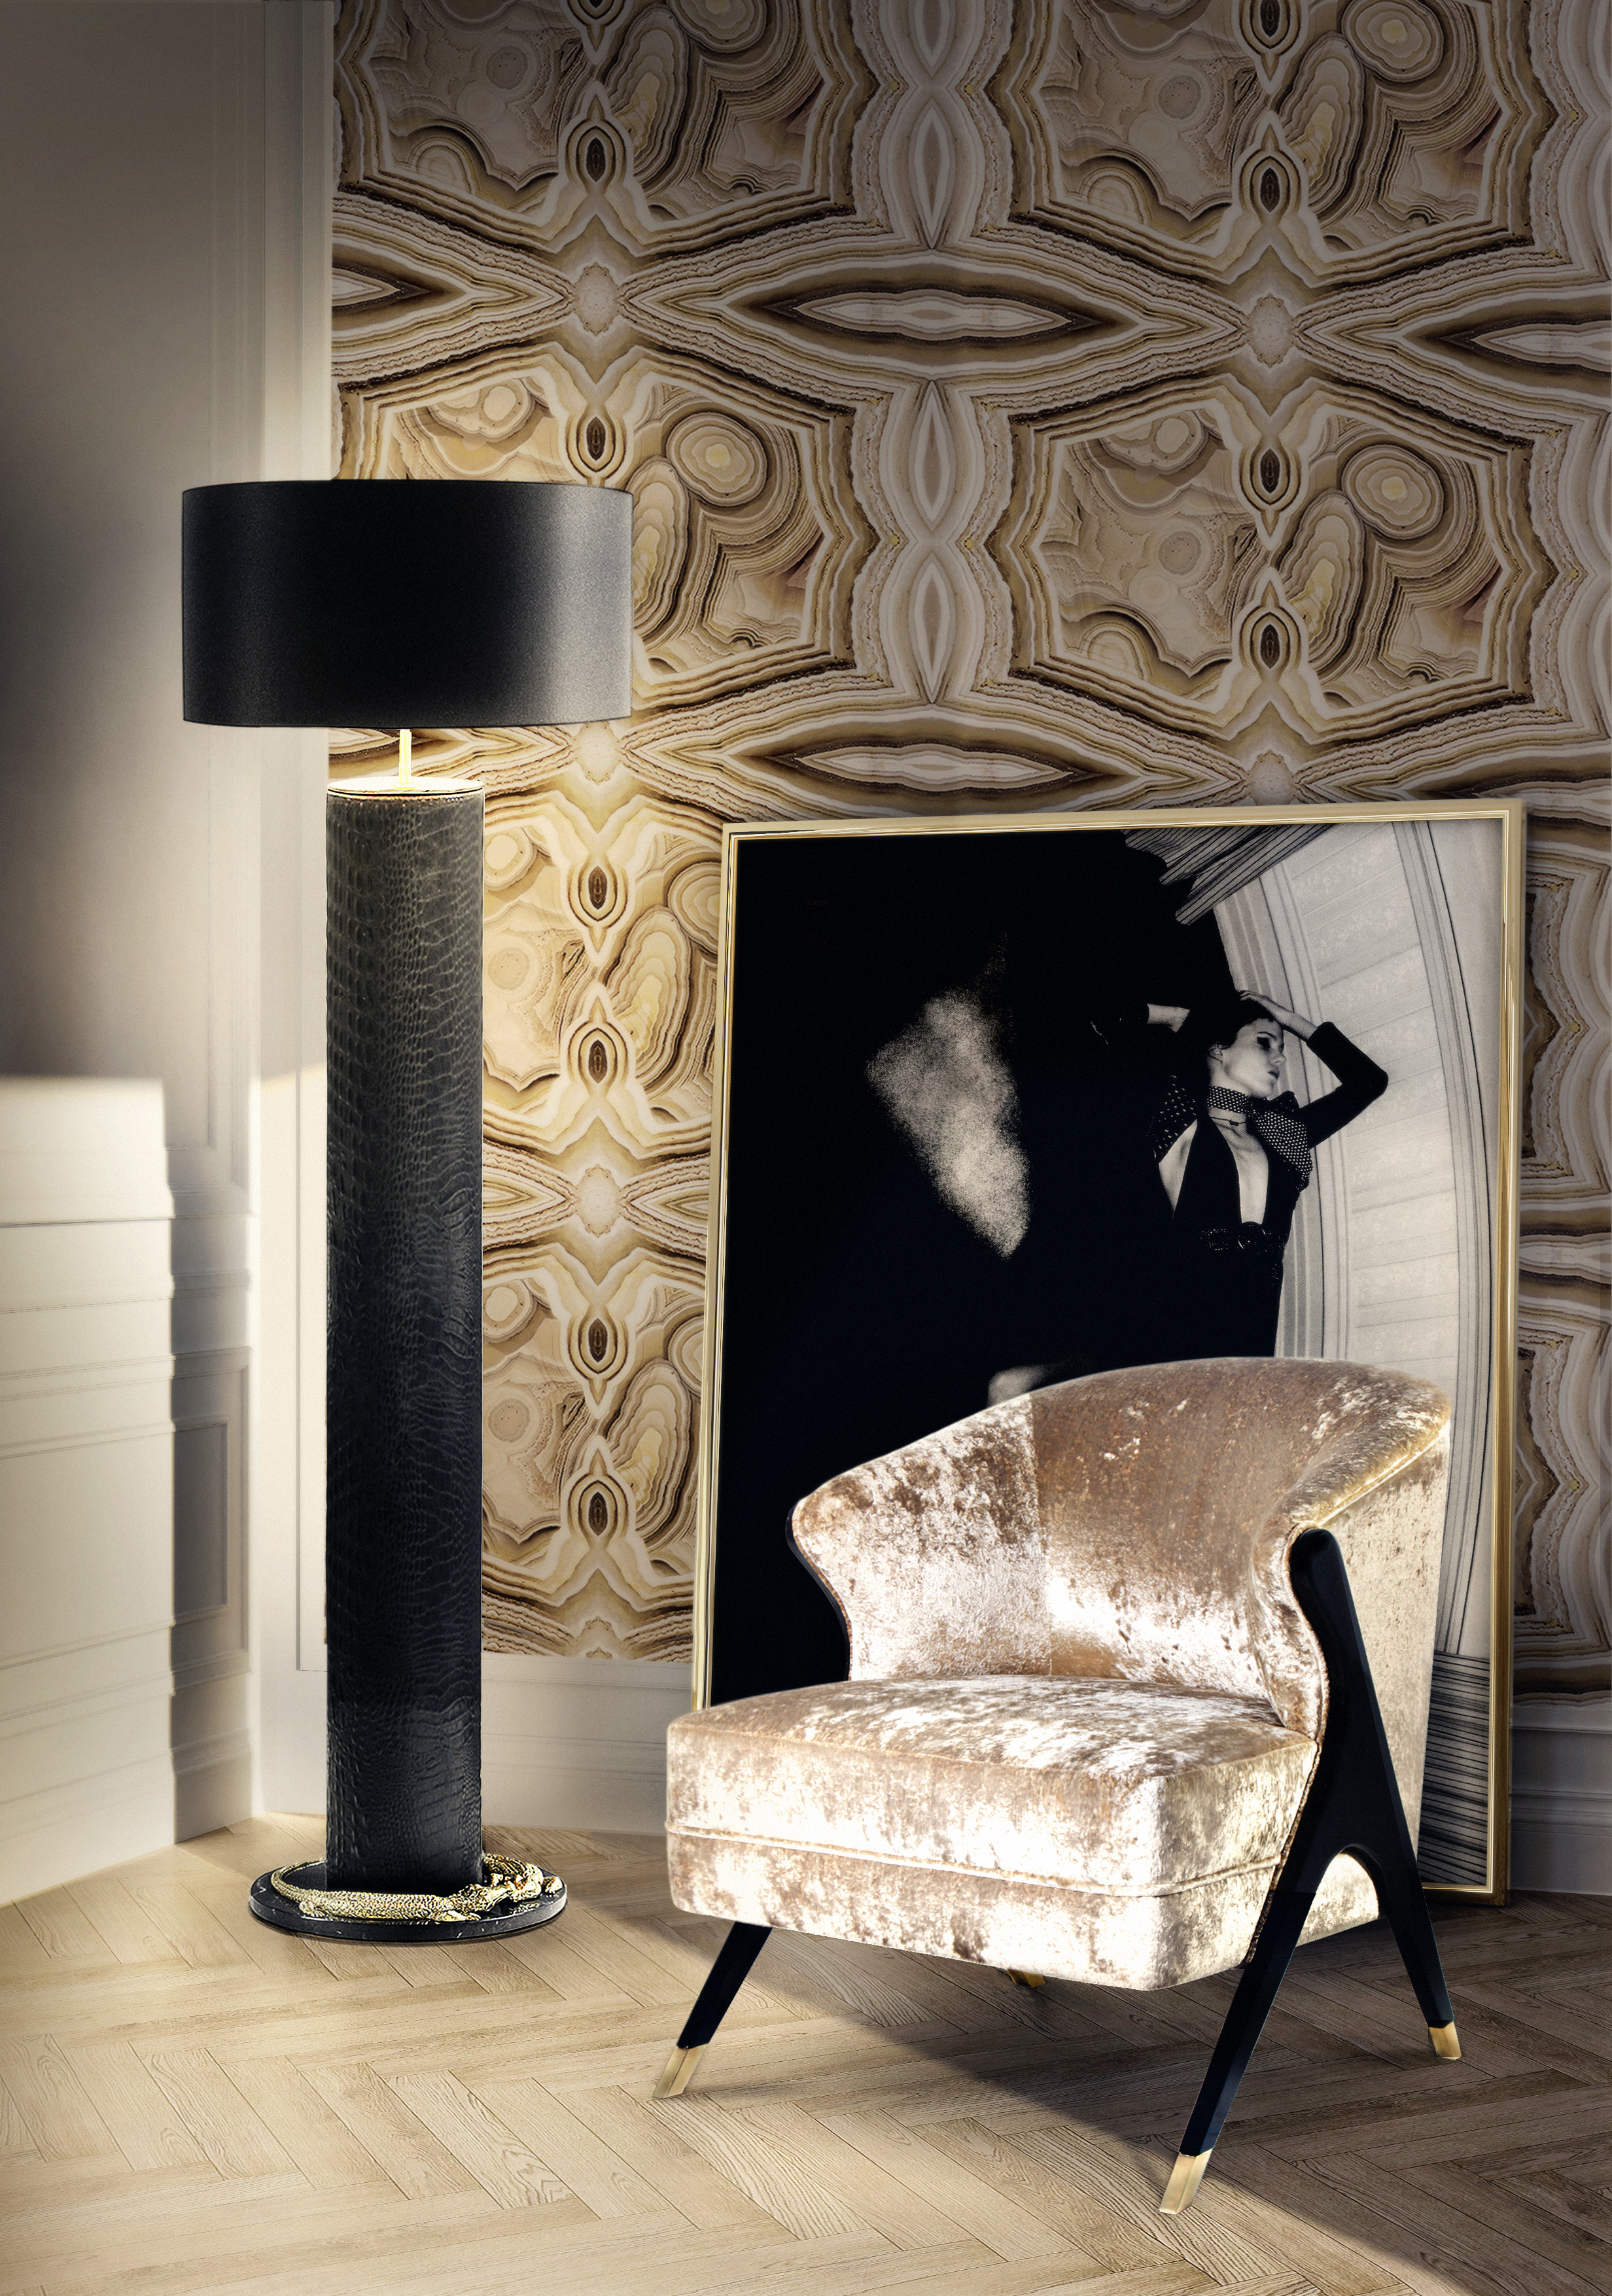 Rock on wallpaper by koket wallpaper designs 10 Wallpaper Designs That will Fit Perfectly in your Home 10 Wallpaper Designs That will Fit Perfectly in your Home8